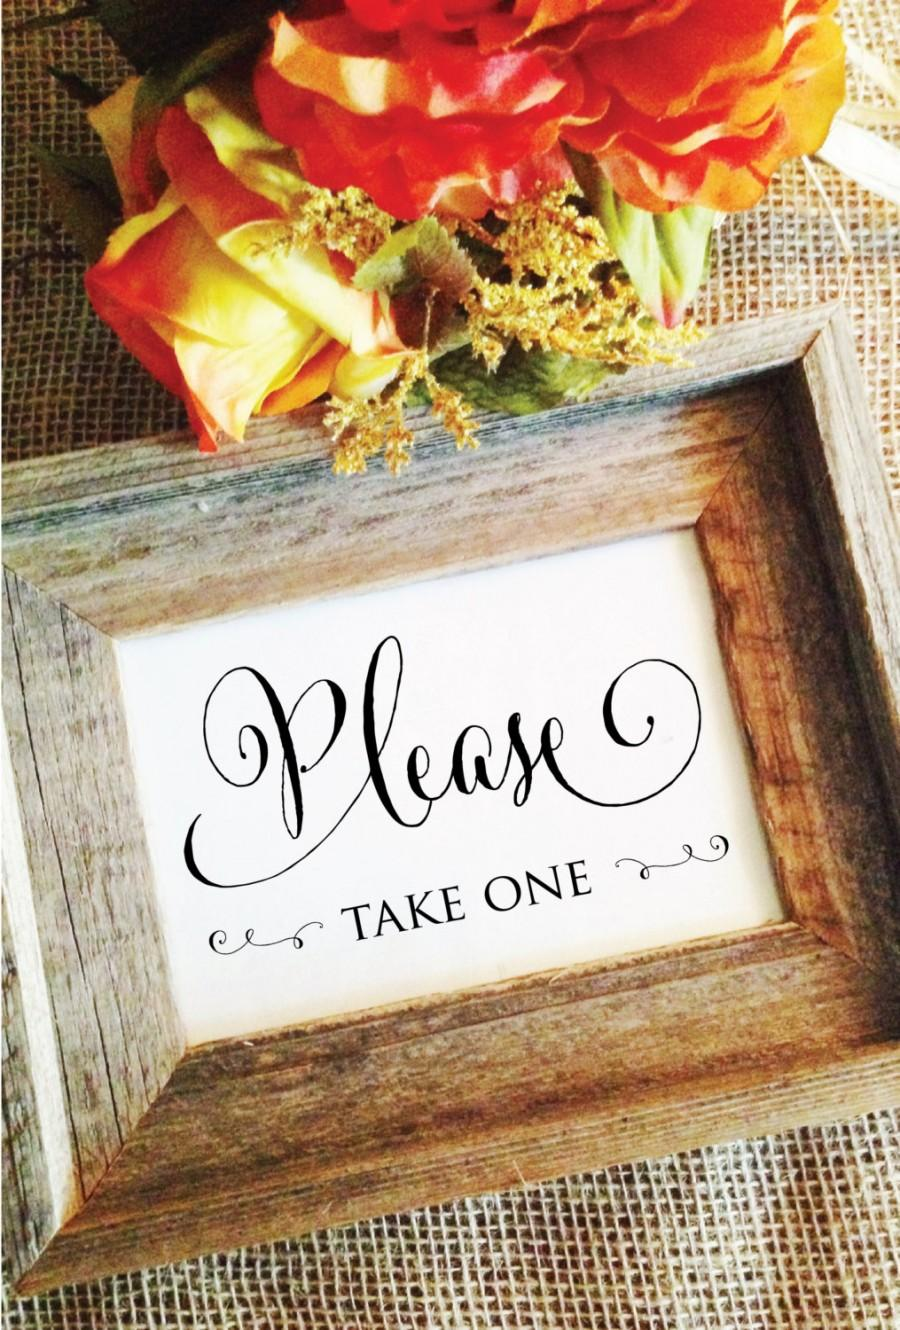 Hochzeit - Please take one sign (Stylish) (Frame NOT included)